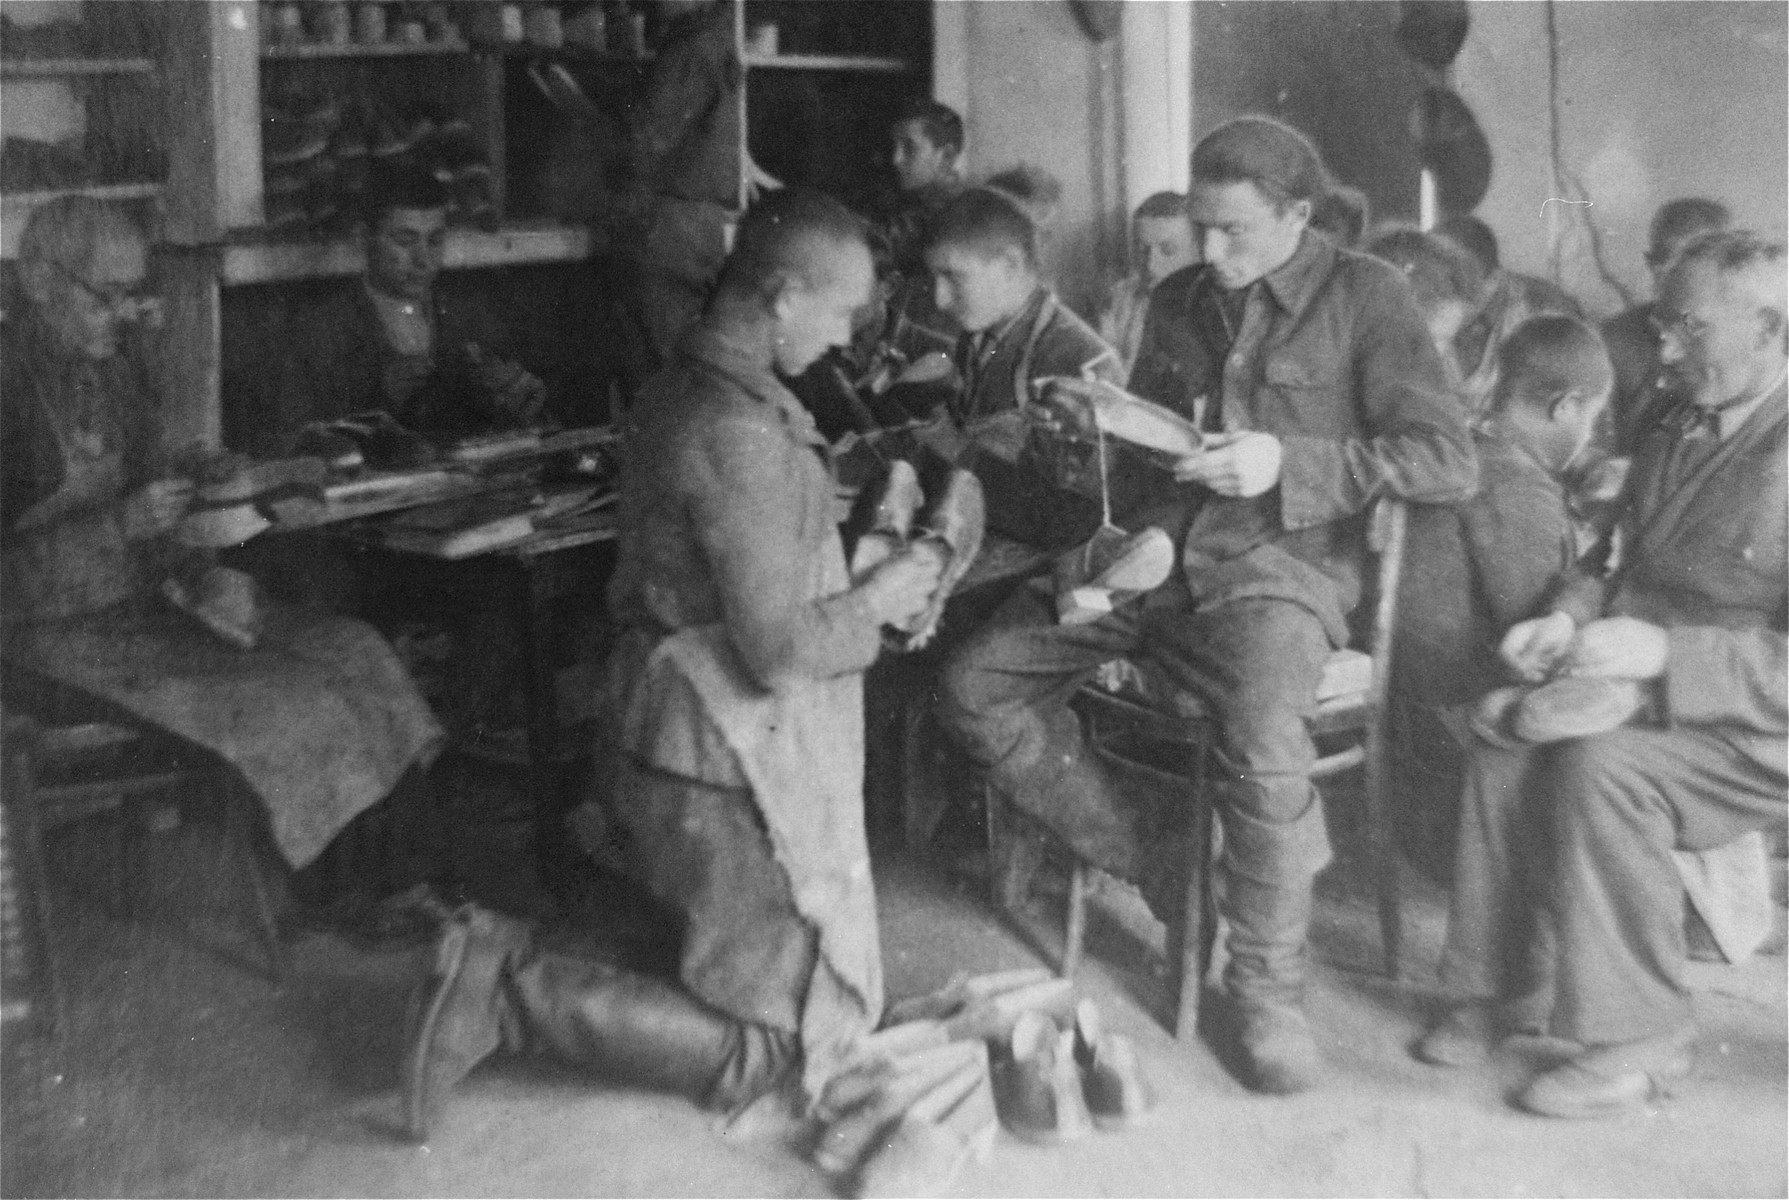 Jewish men at work producing wooden shoes in the Glubokoye ghetto.